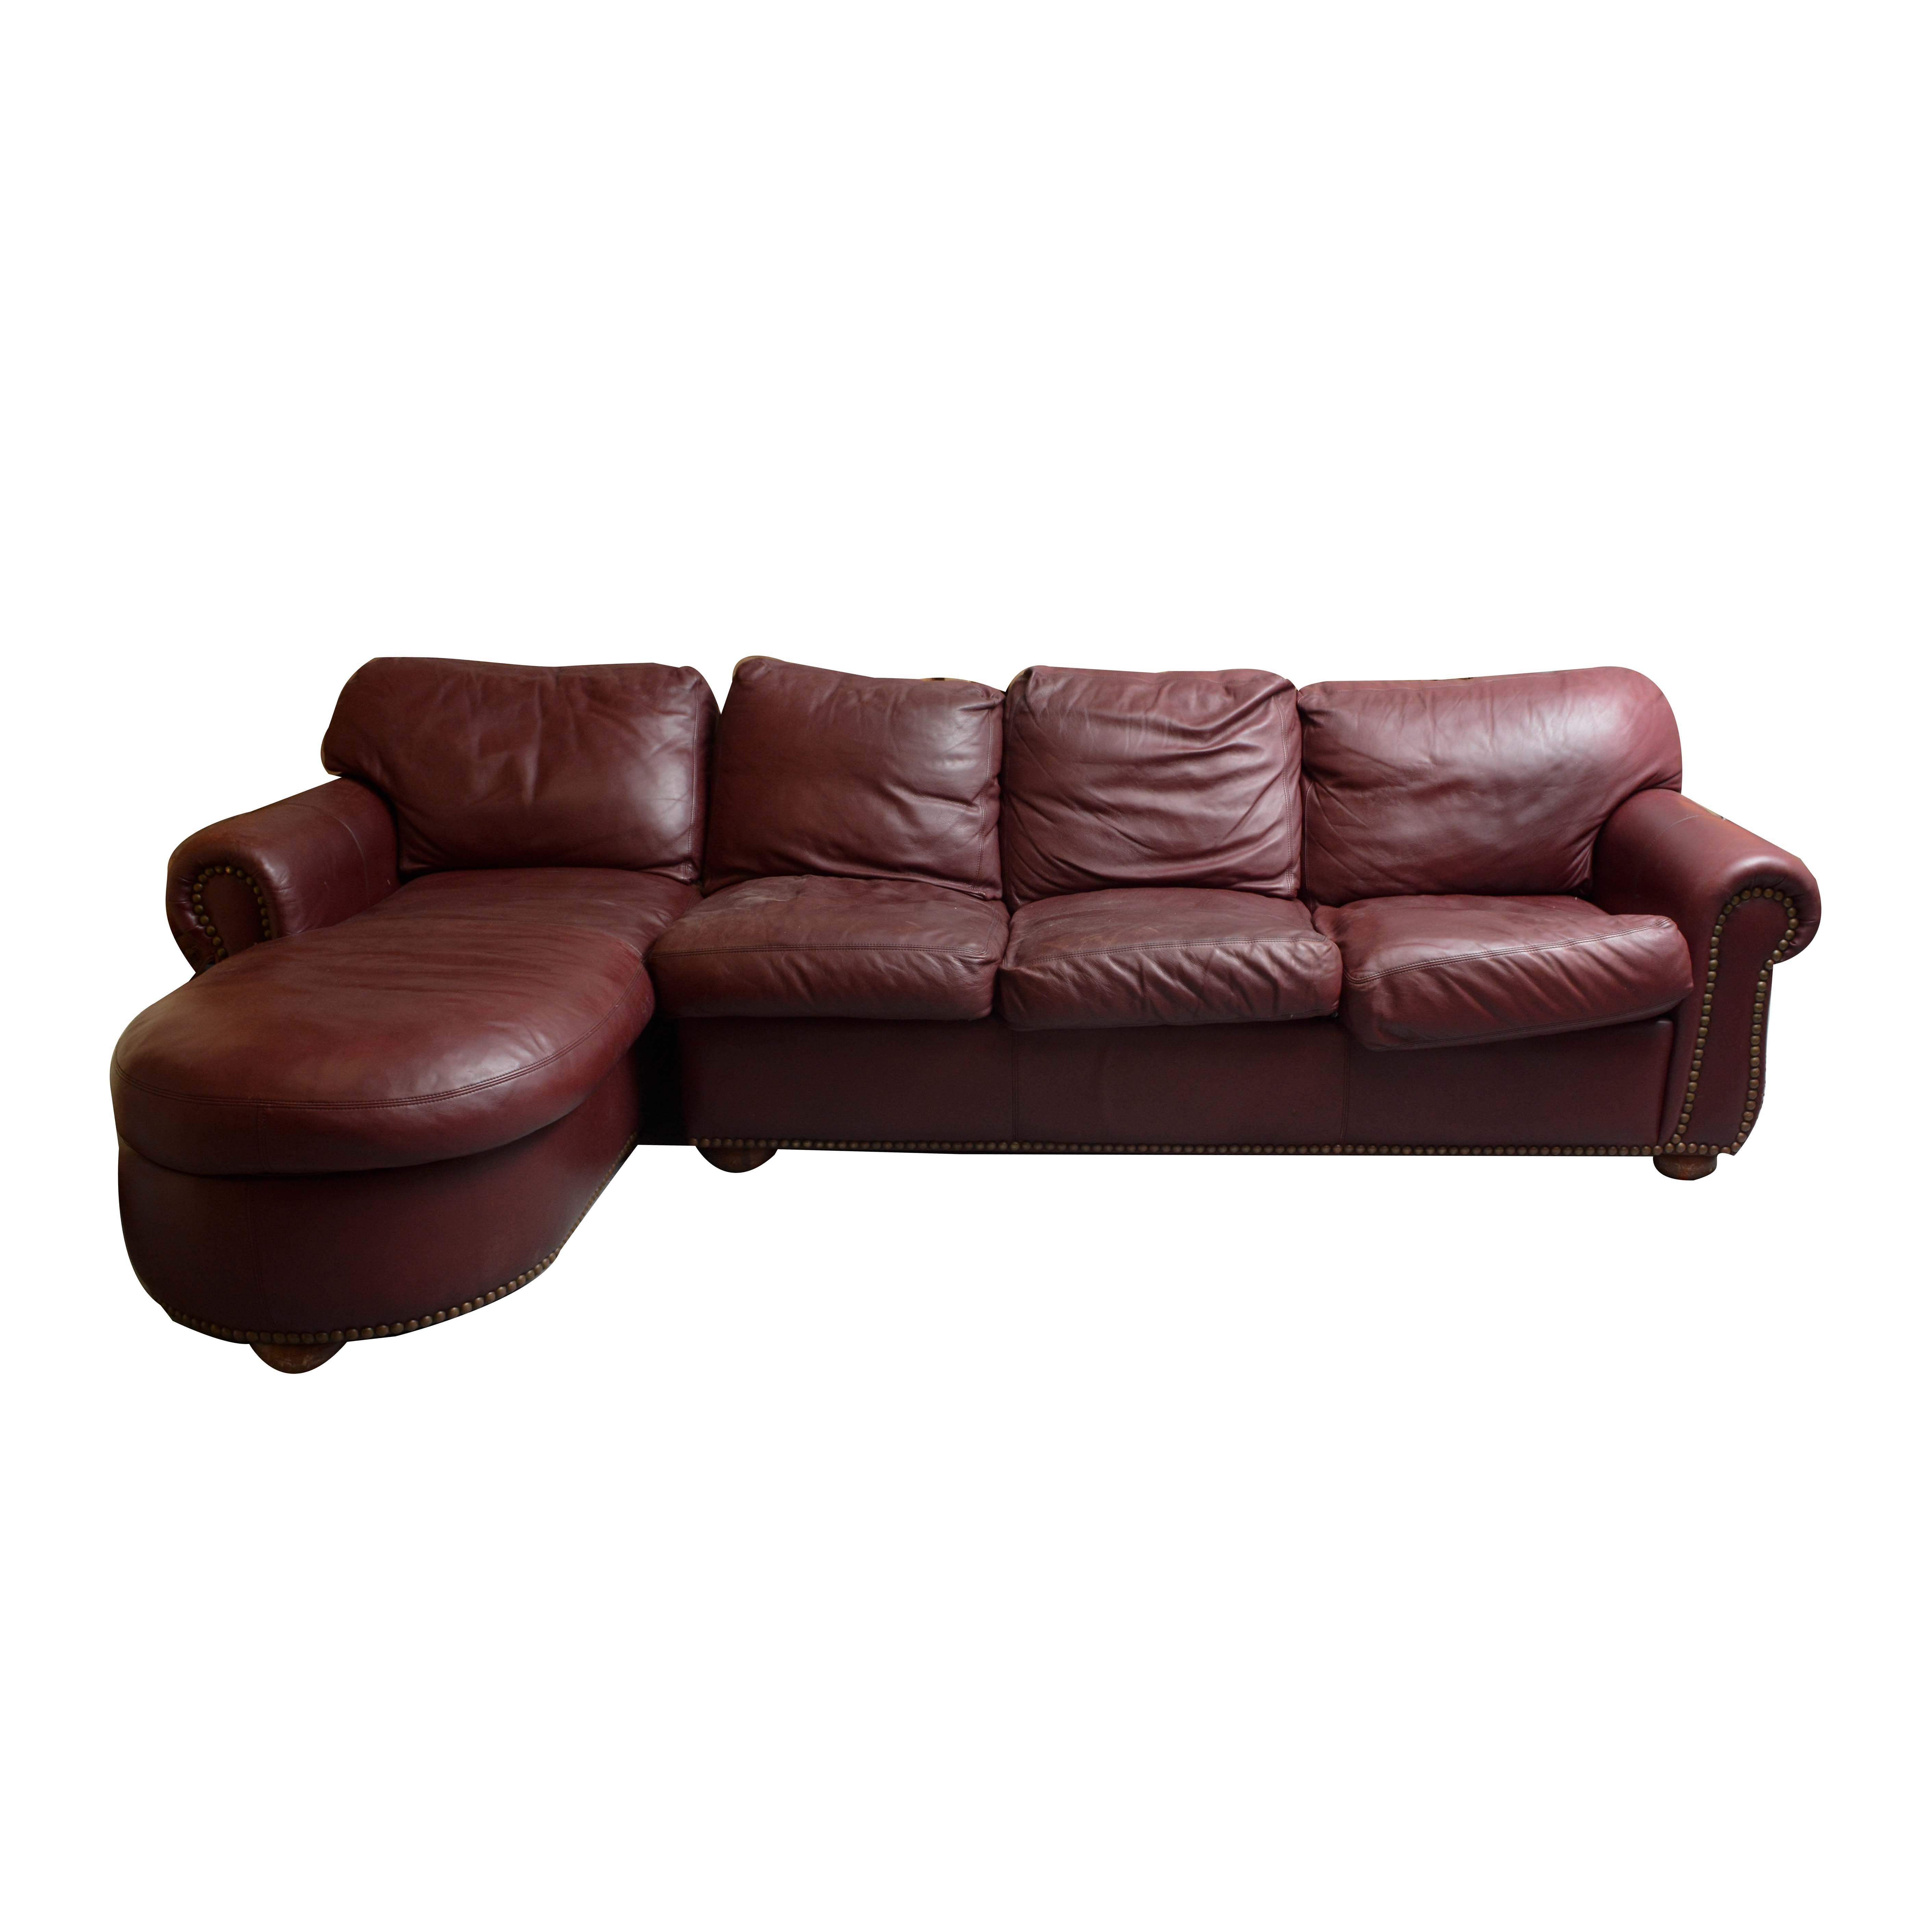 Leather Sofa with Chaise by American Leather